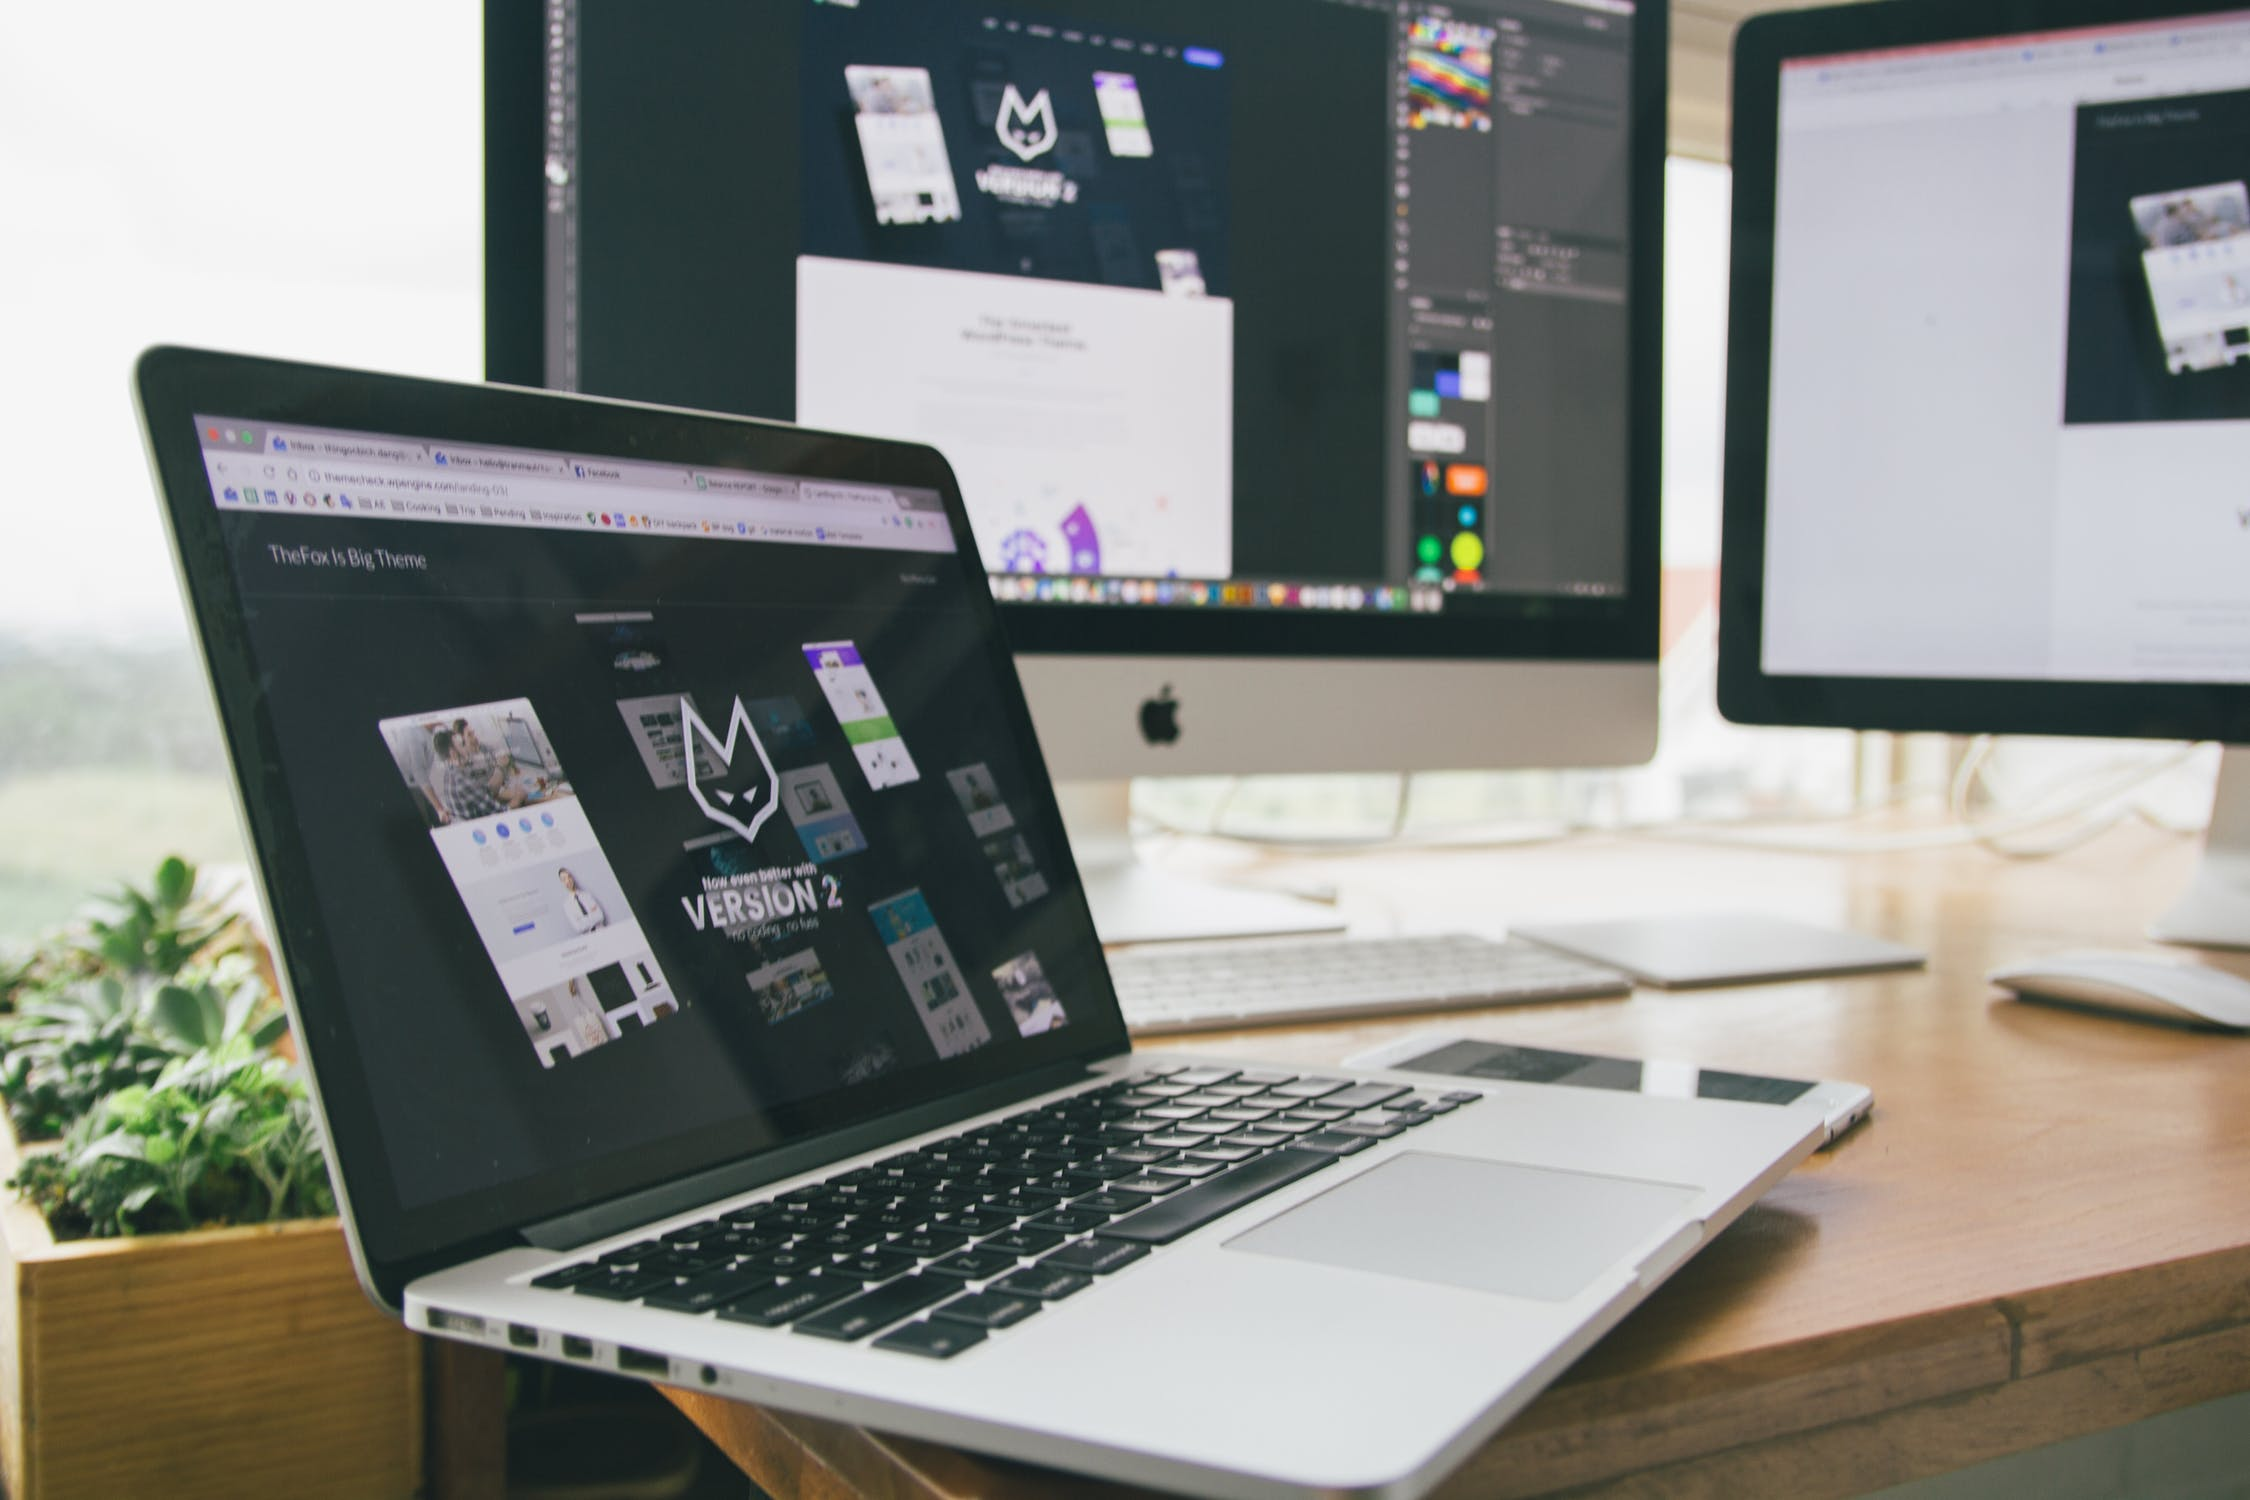 10 Trends in the UI/UX Design Space